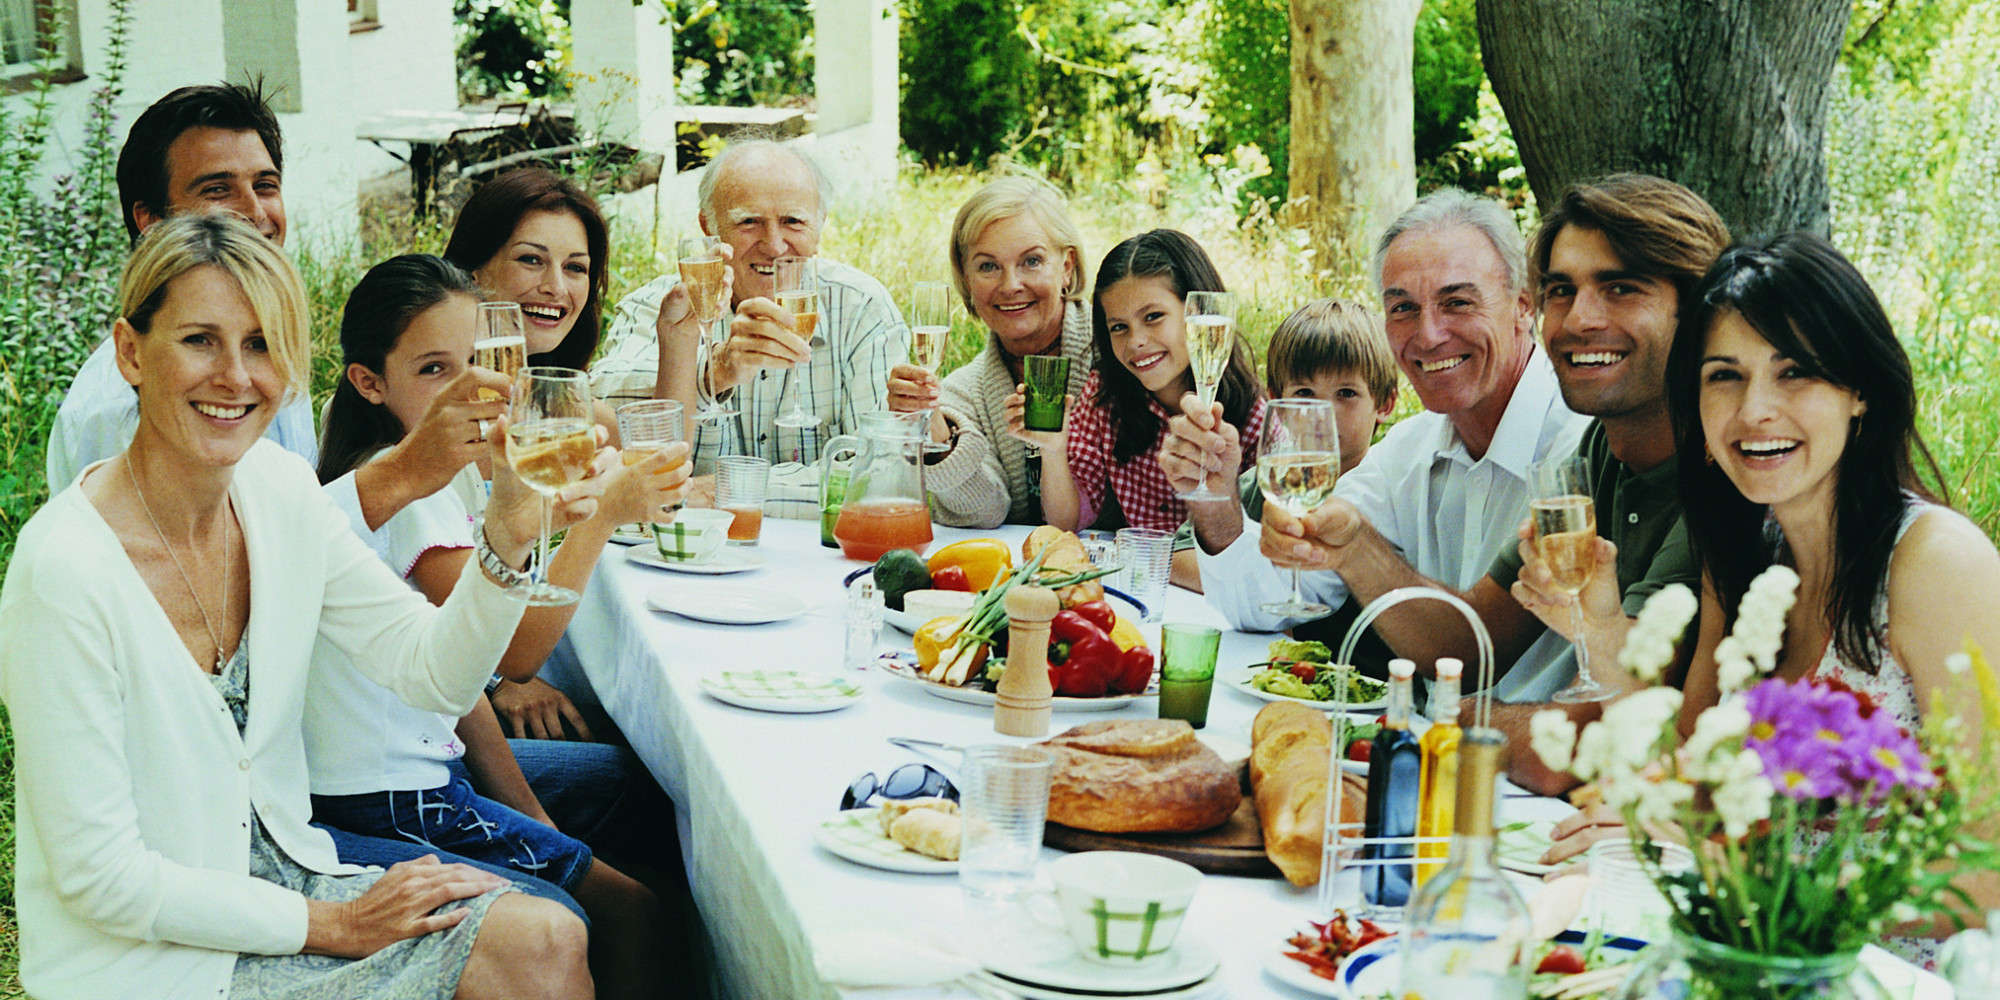 Making The Most Of Family Relationships